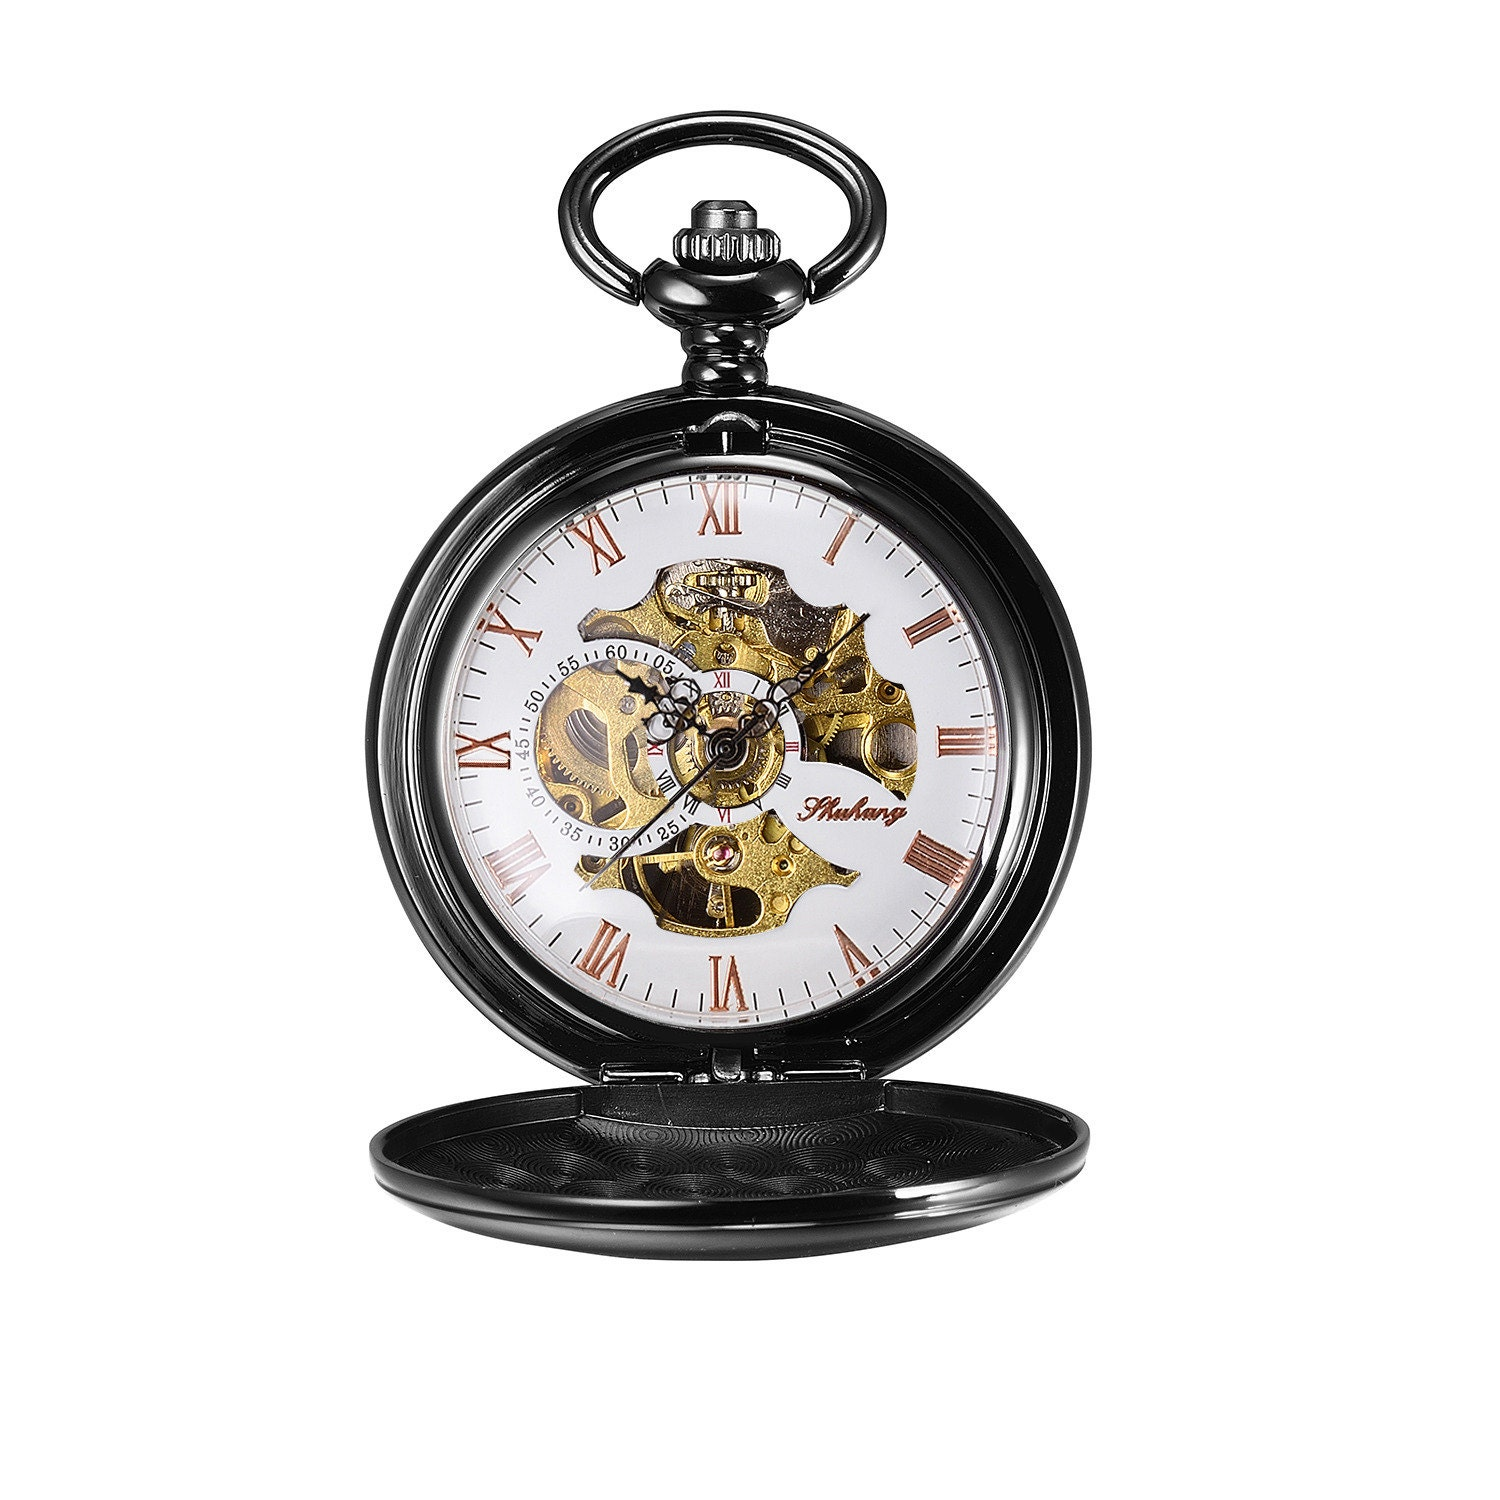 Pocket watch groomsmen gift engraved pocket watch for Watches engraved